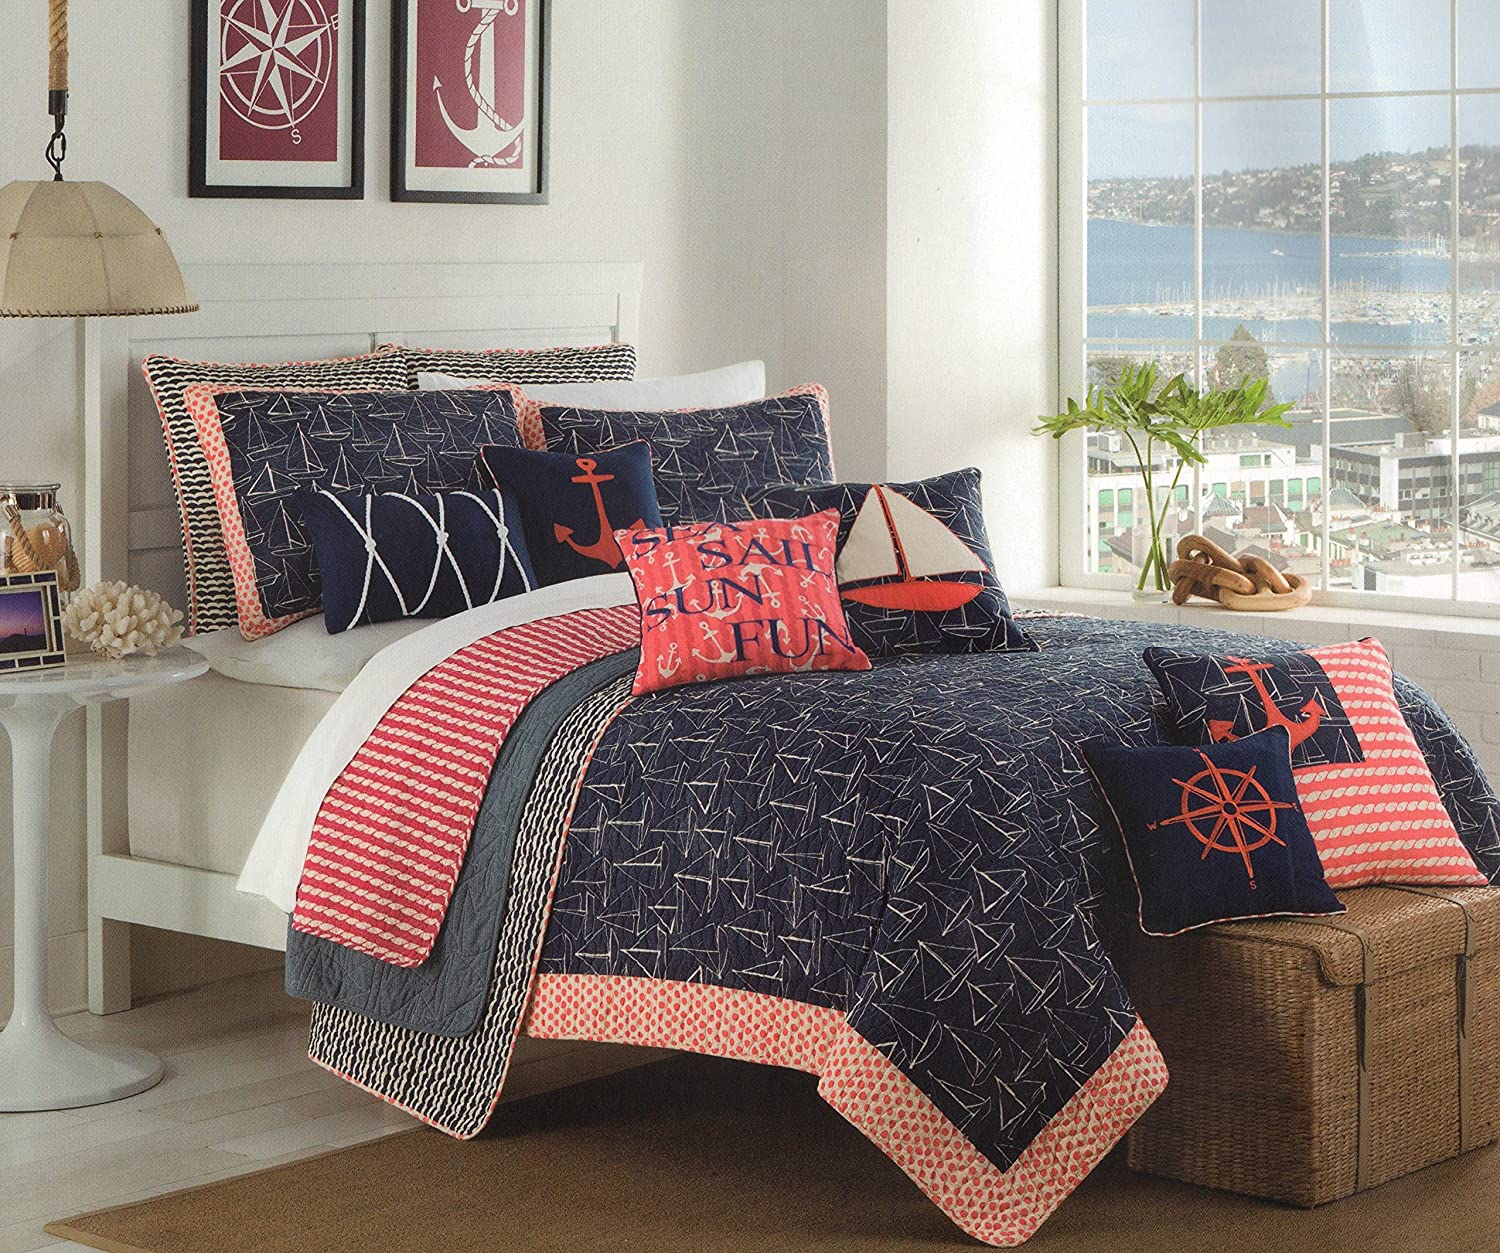 Navy And Coral Bedding Part - 23: Amazon.com: Max Studio Nautical Design Bedspread 3pc Full/Queen Quilt Set  Coverlet Cotton Reversible Quilted Bedding Sail Away, Ship Boat Navy Blue  Coral ...